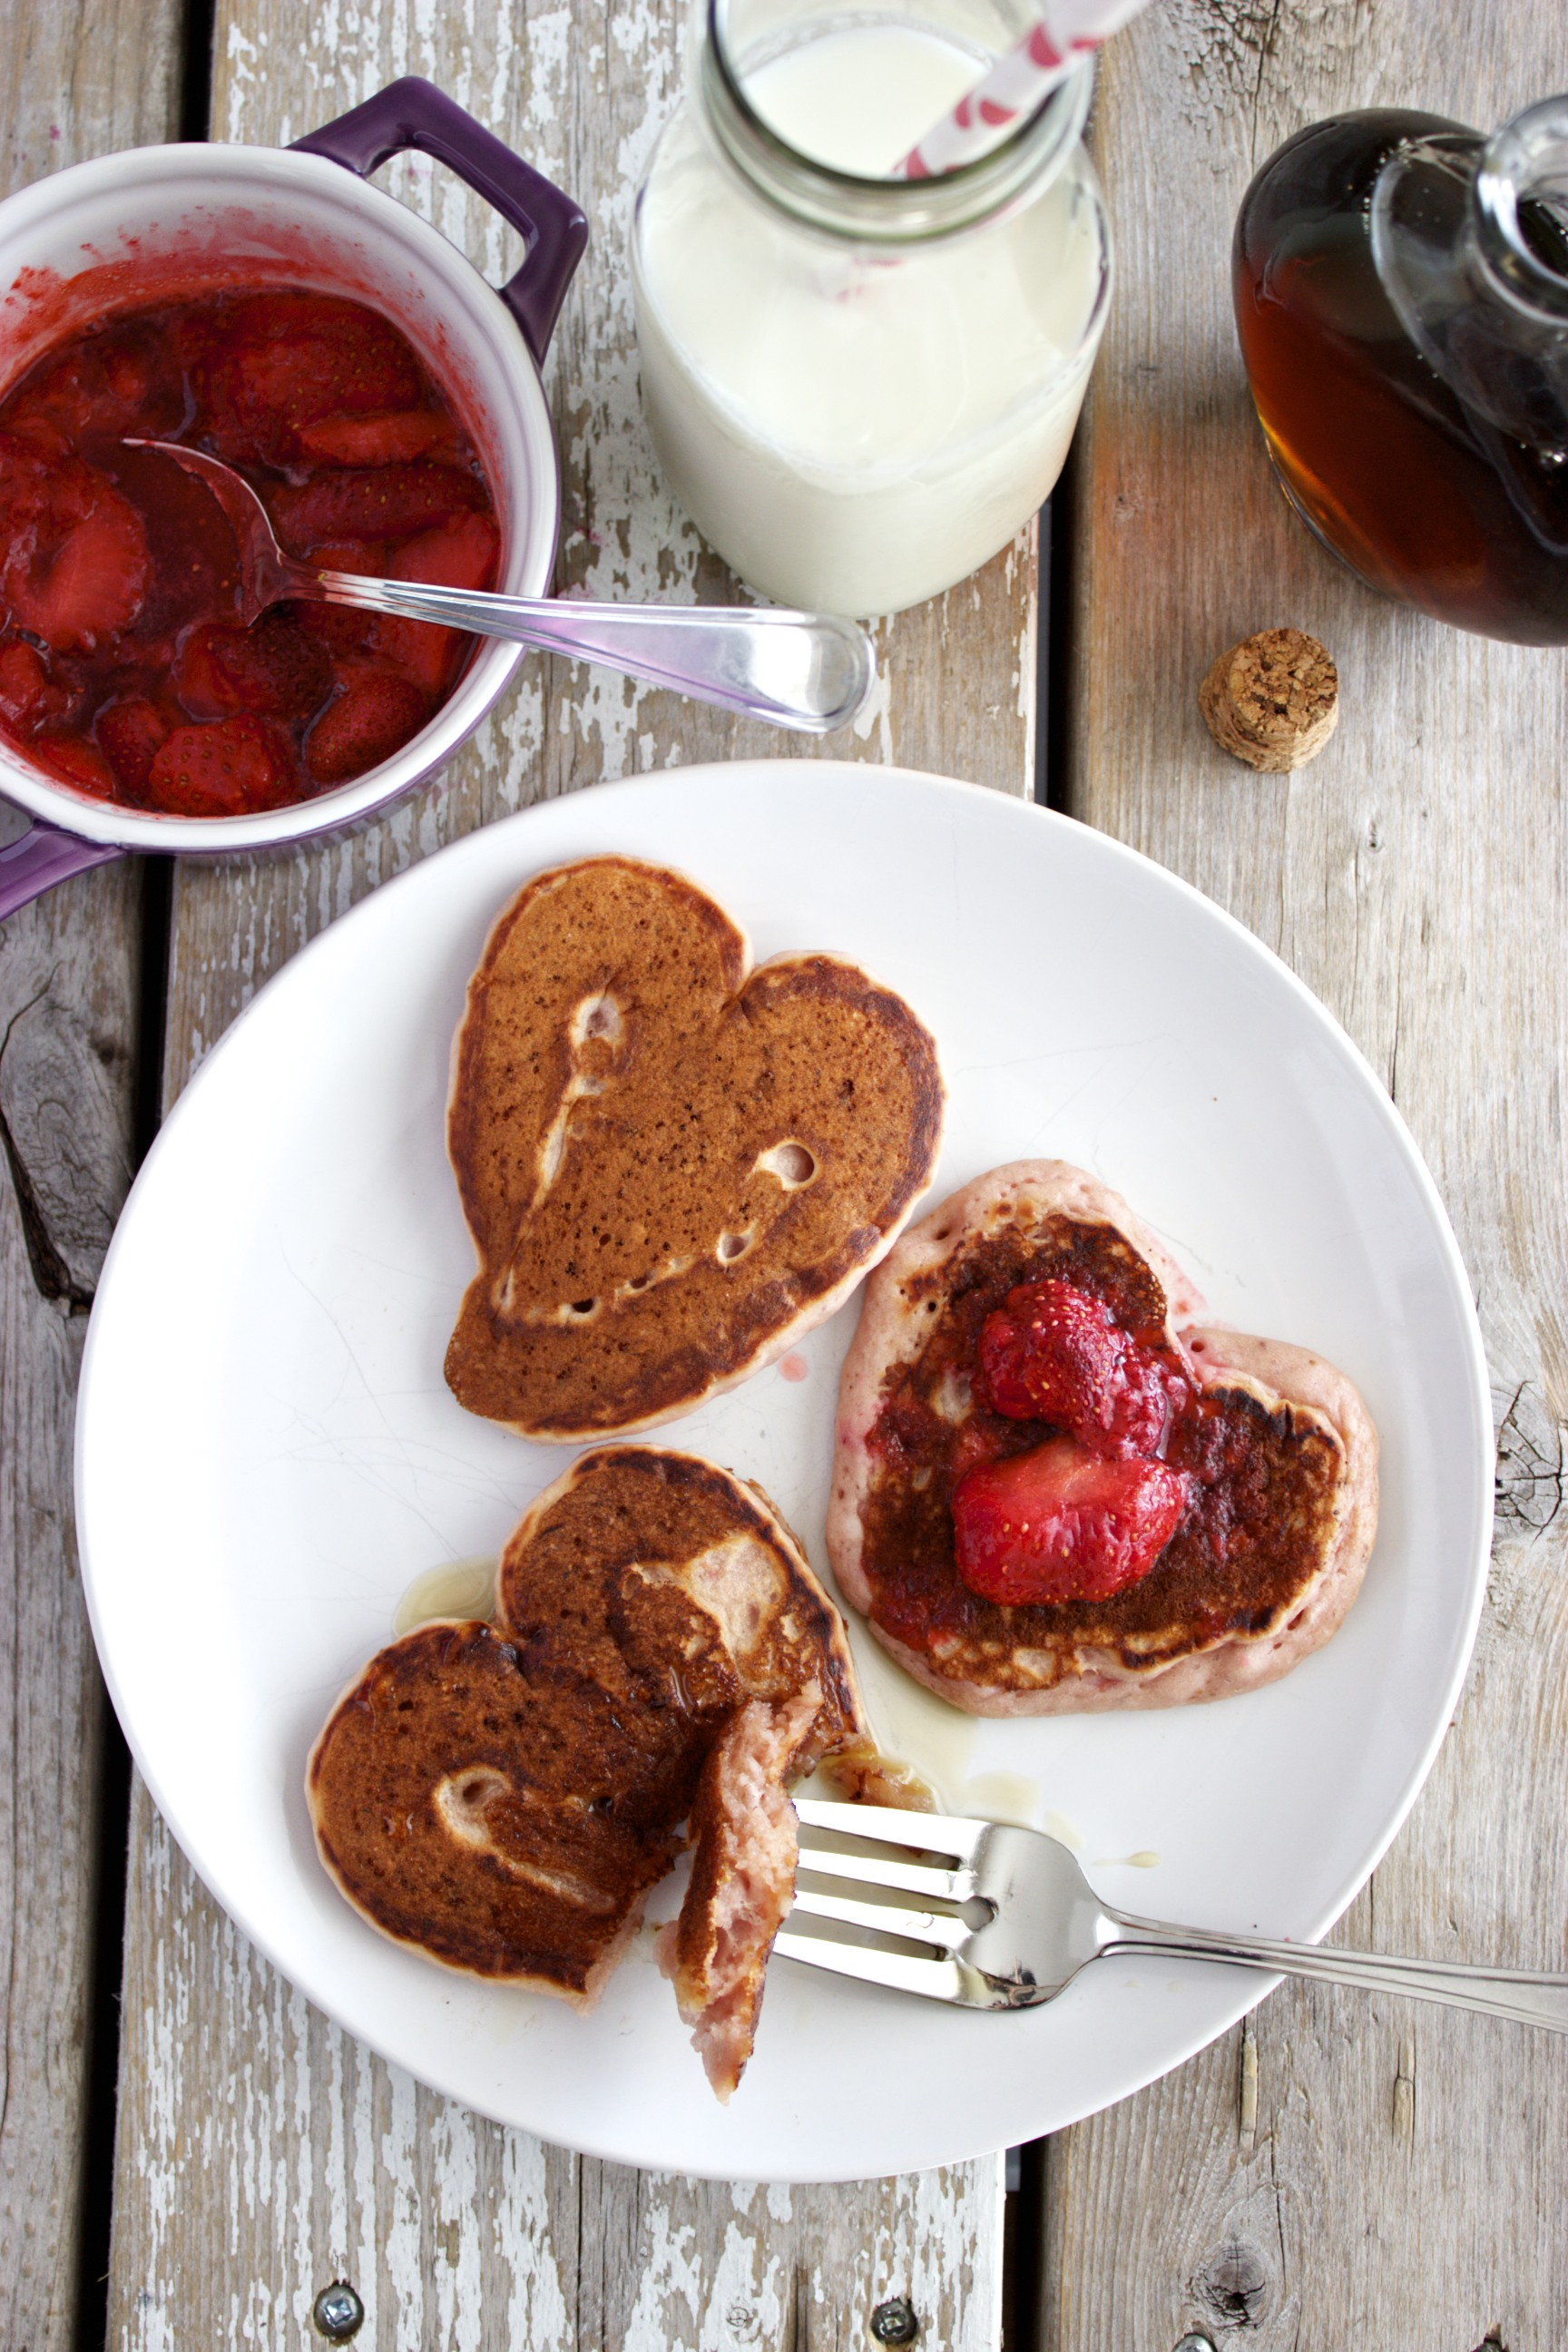 Strawberry Heart Pancakes